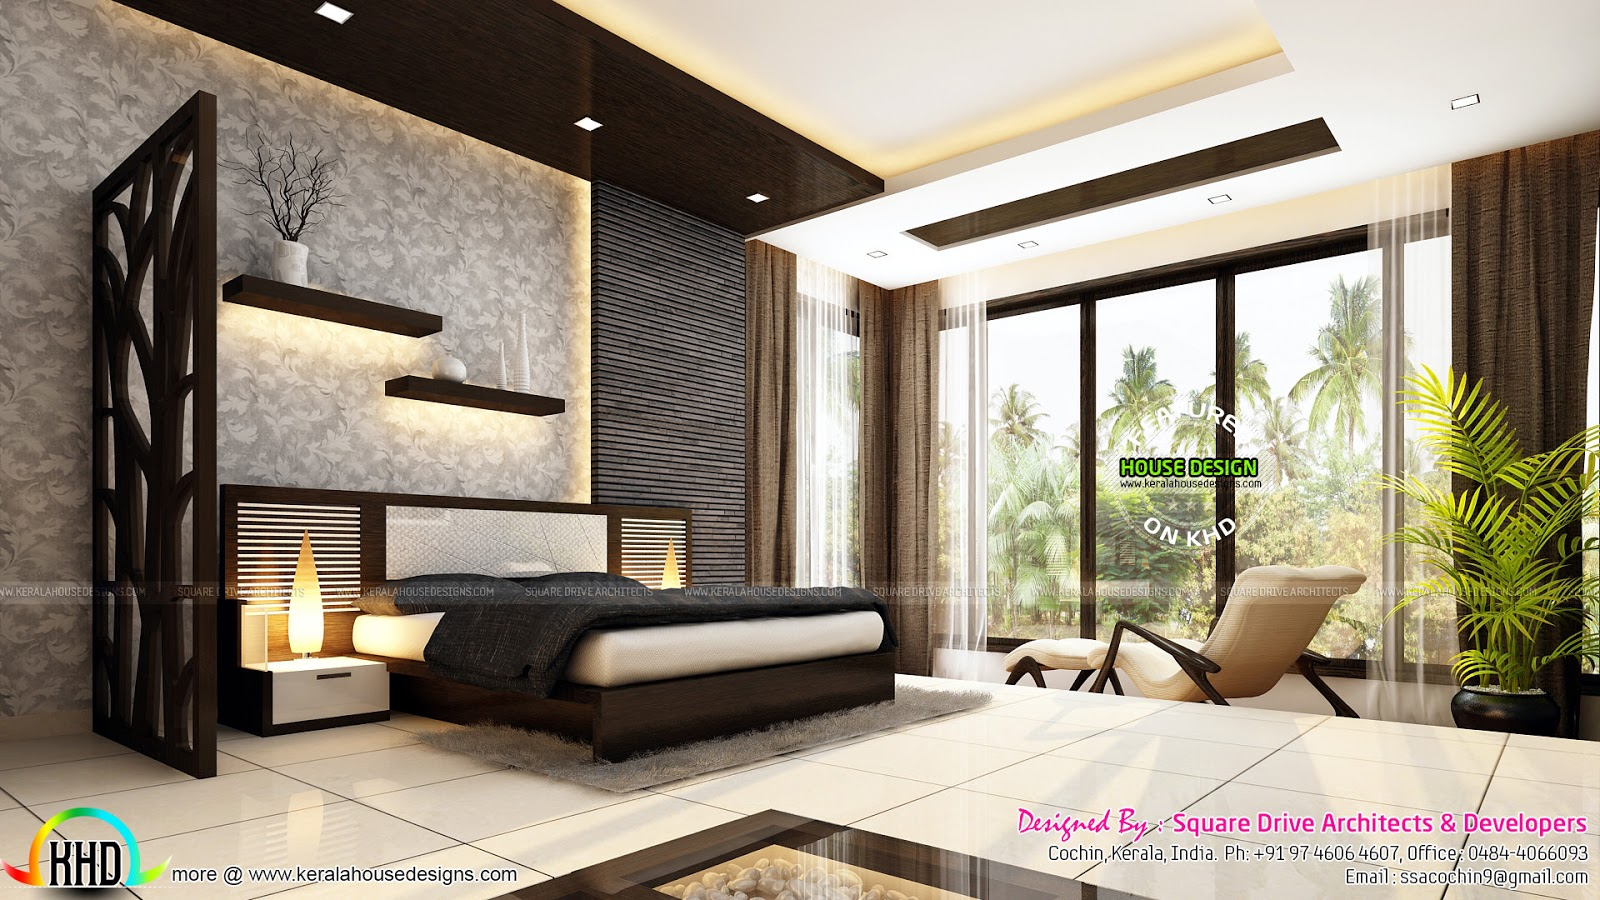 Very beautiful modern interior designs kerala home for In side house design